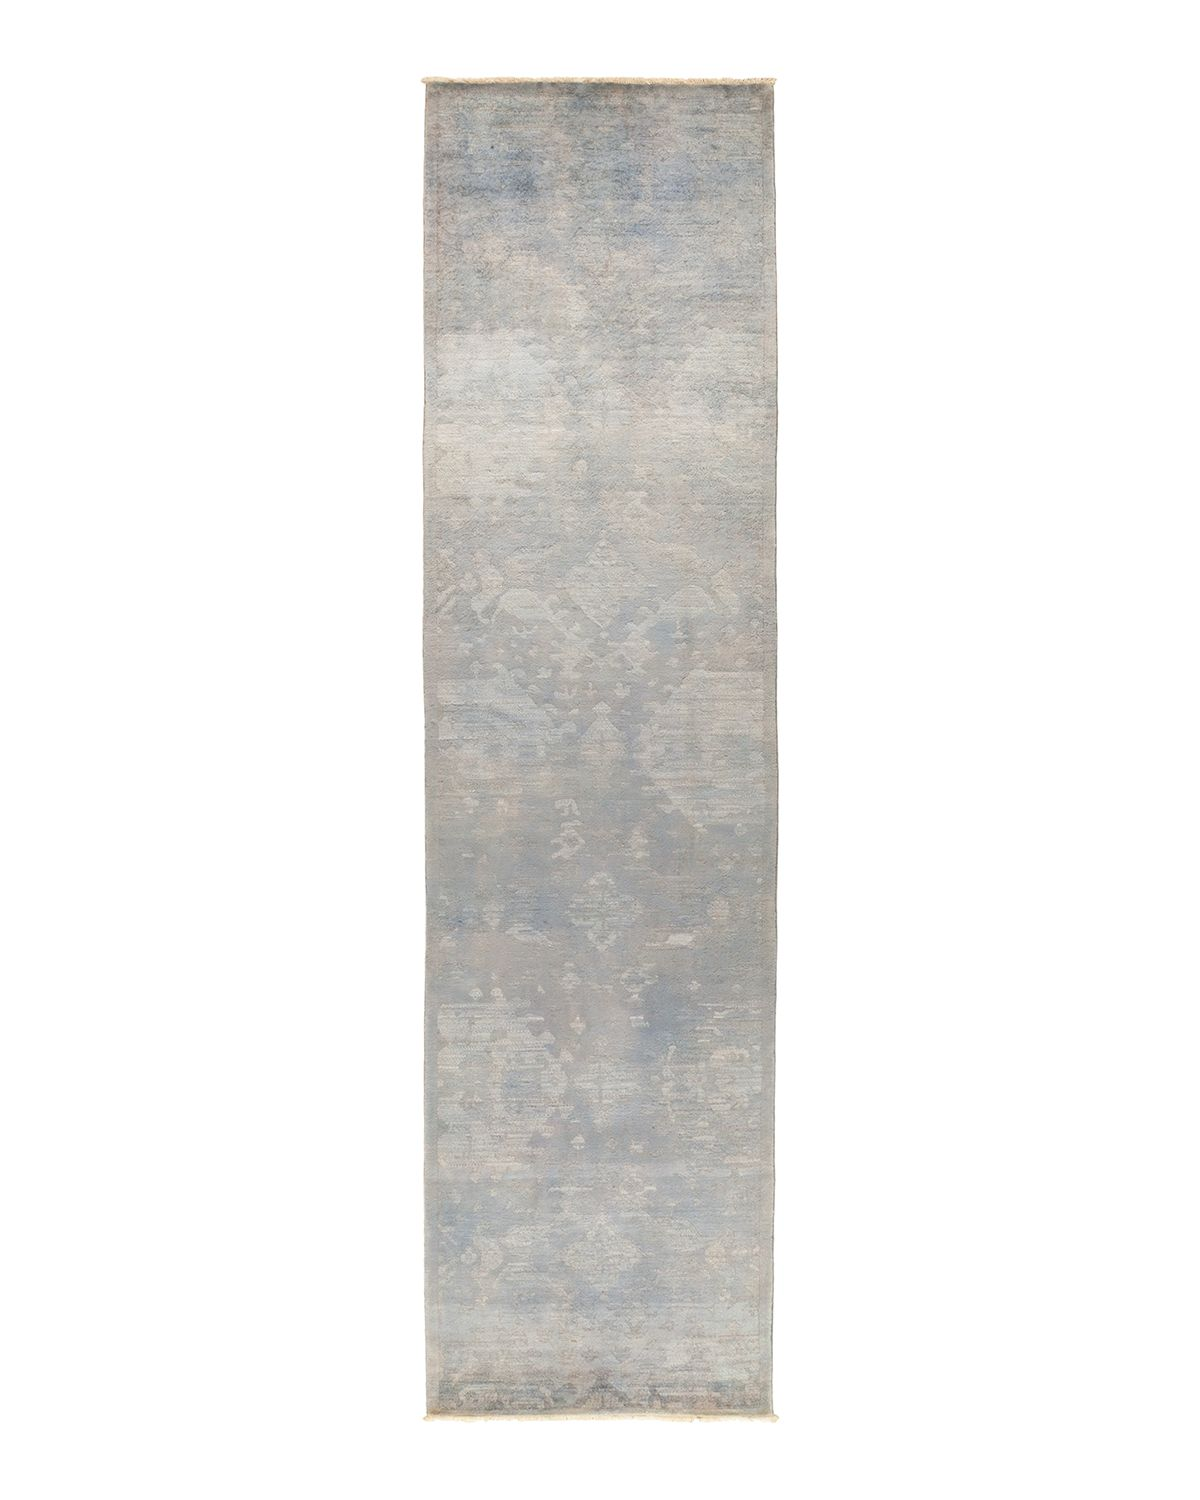 Solo Rugs Vibrance 56 Hand Knotted Runner Rug 3 2 X 12 4